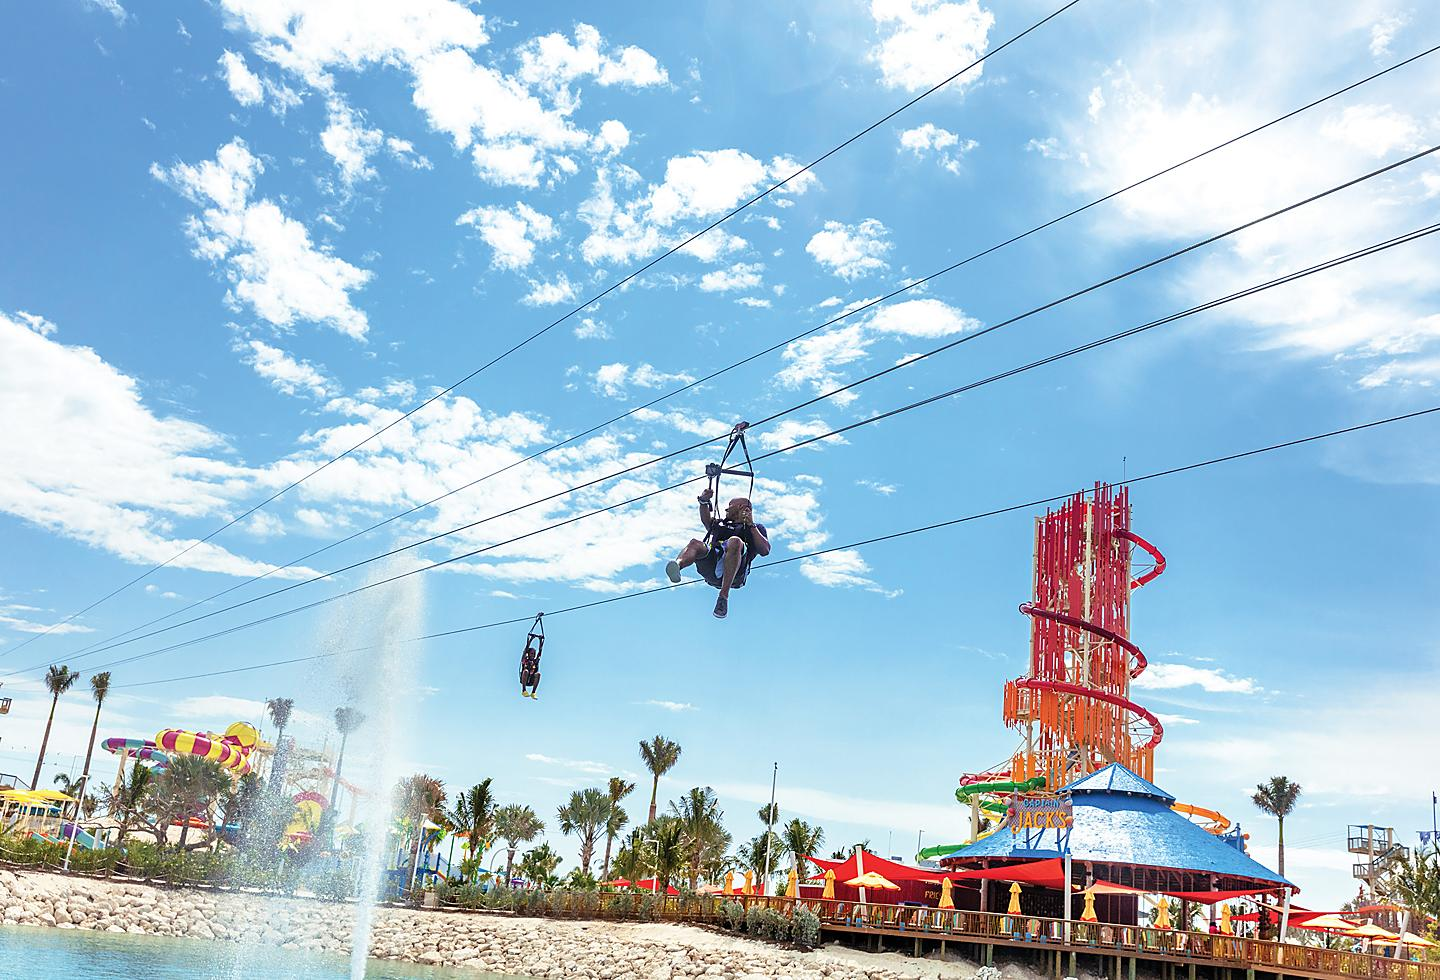 Zipline Across Perfect Day at CocoCay